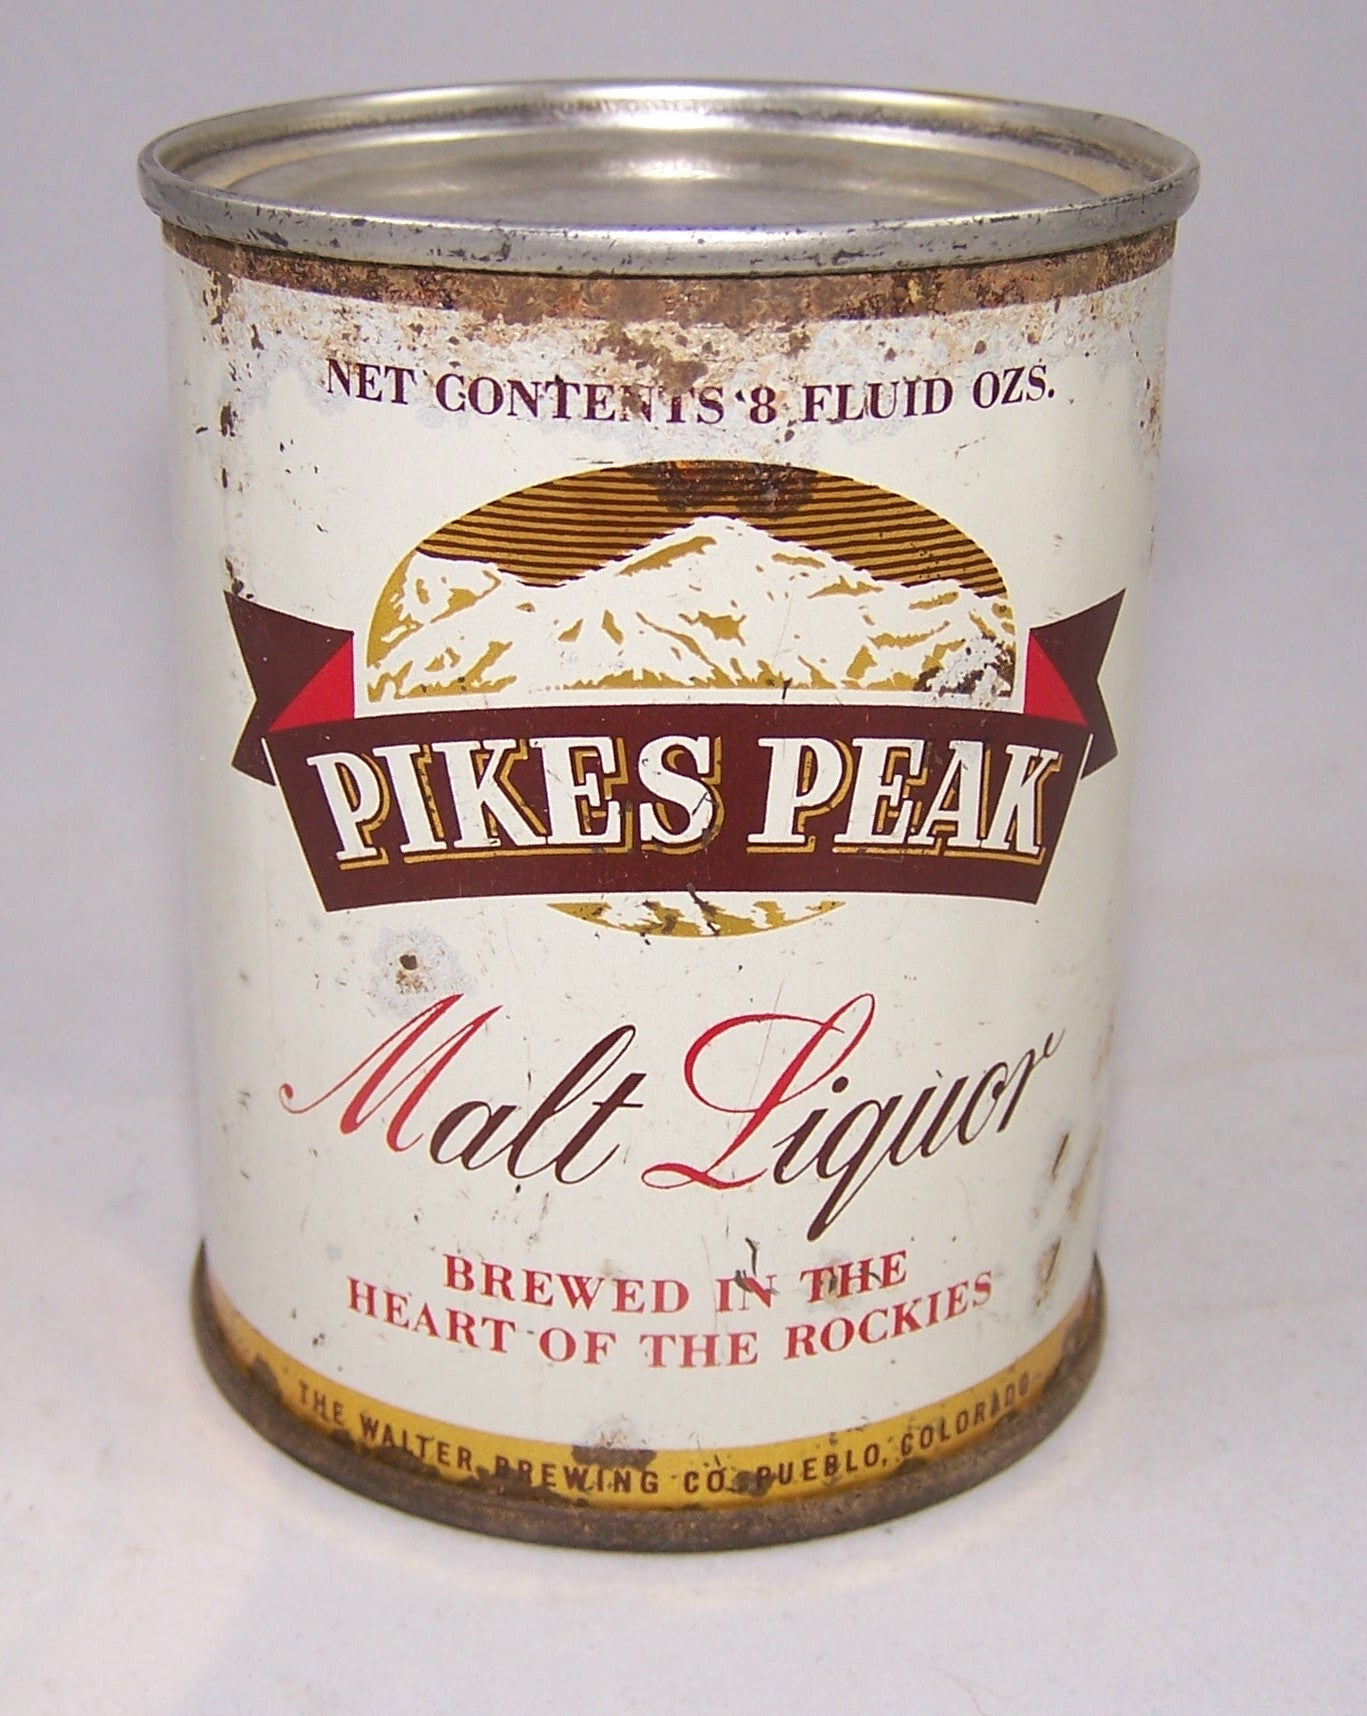 Pikes Peak Malt Liquor 8 ounce, USBC 242-6, Grade 1-/2+ Sold on 10/10/15